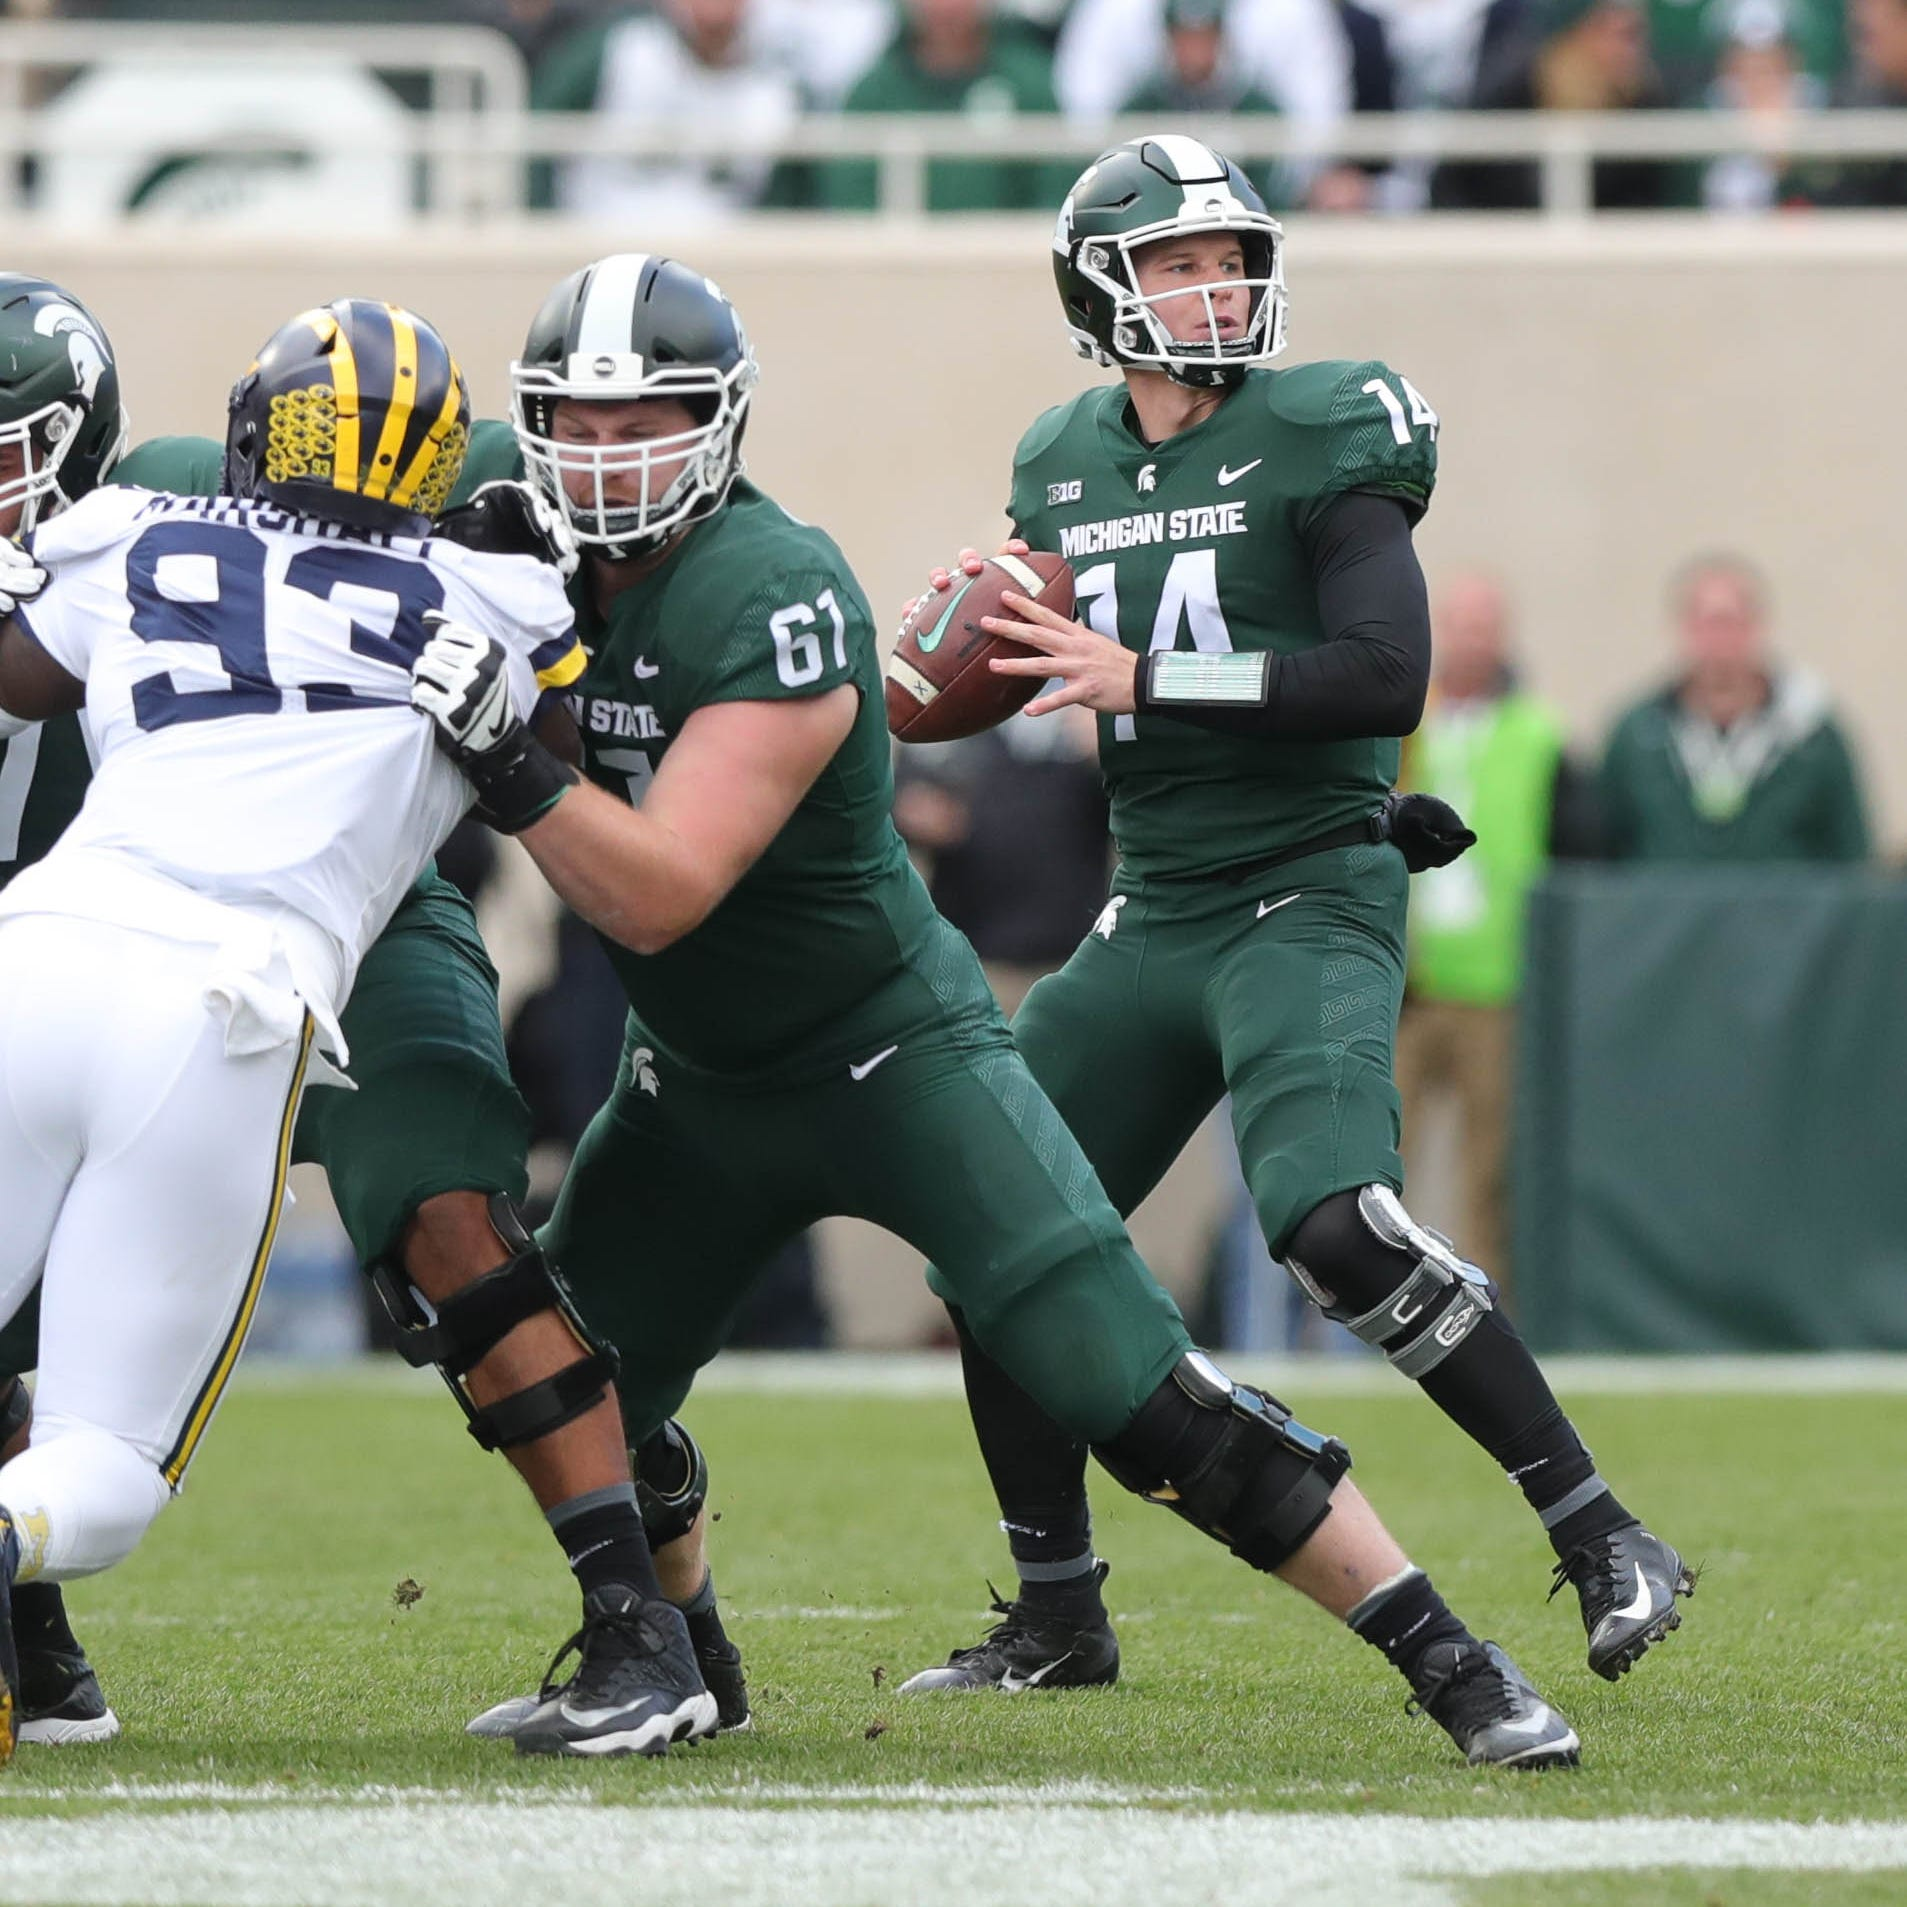 Whoa! MSU football converts epic TD pass to Brian Lewerke vs. Michigan